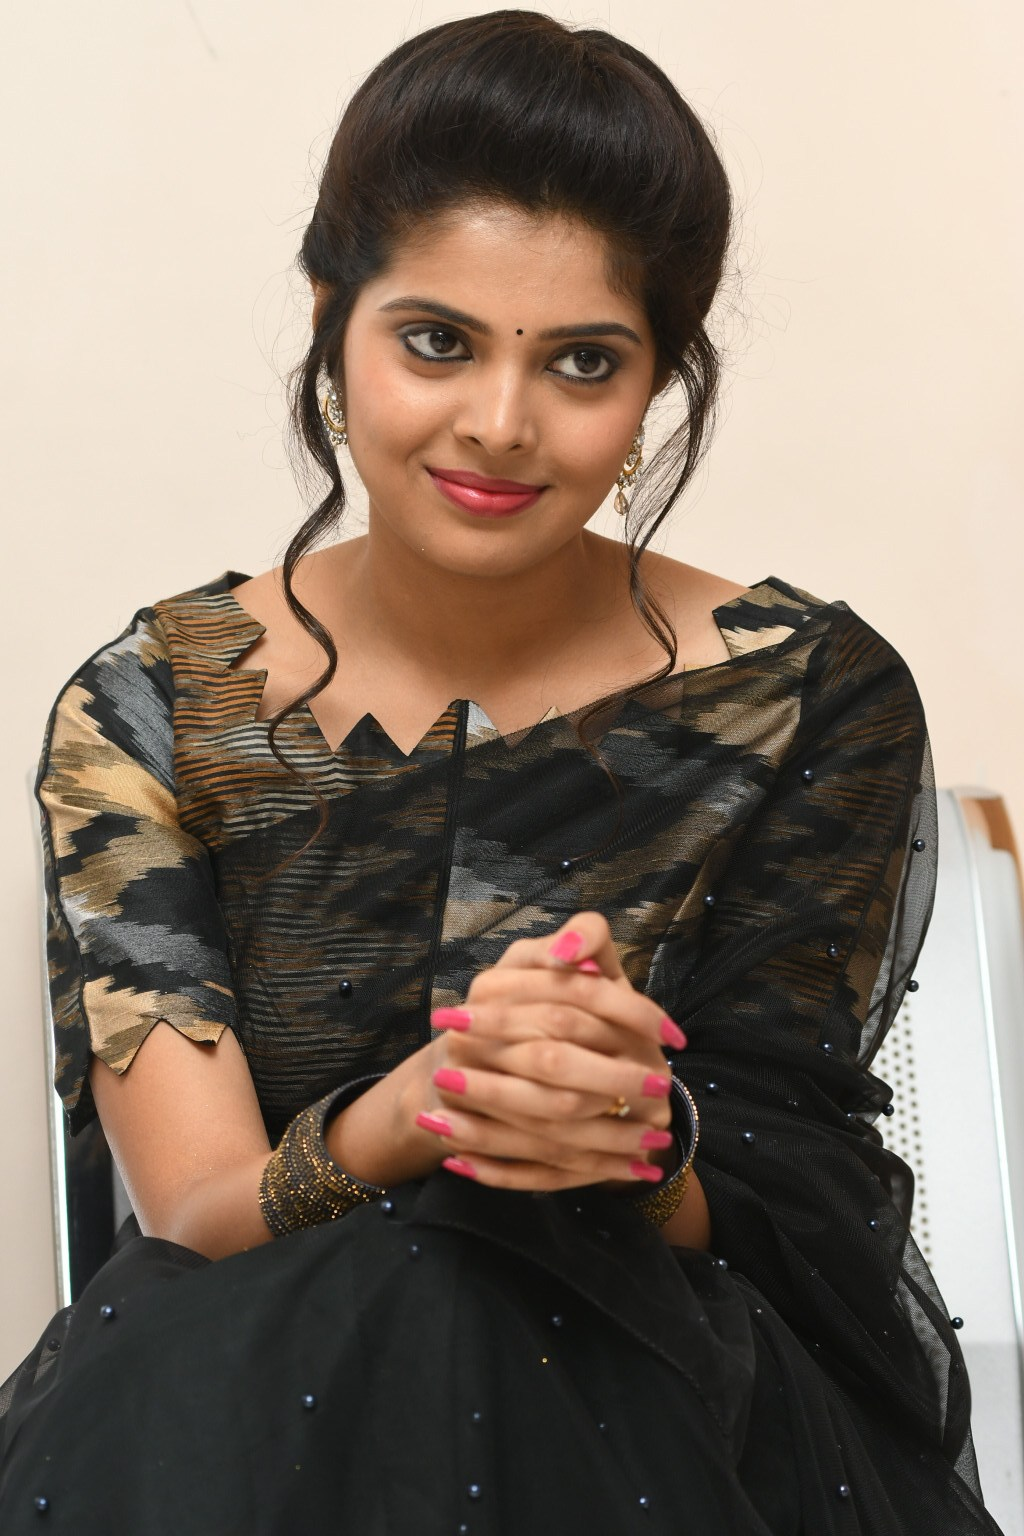 Shravya Looks cute in this Black Saree Mindblowing collections